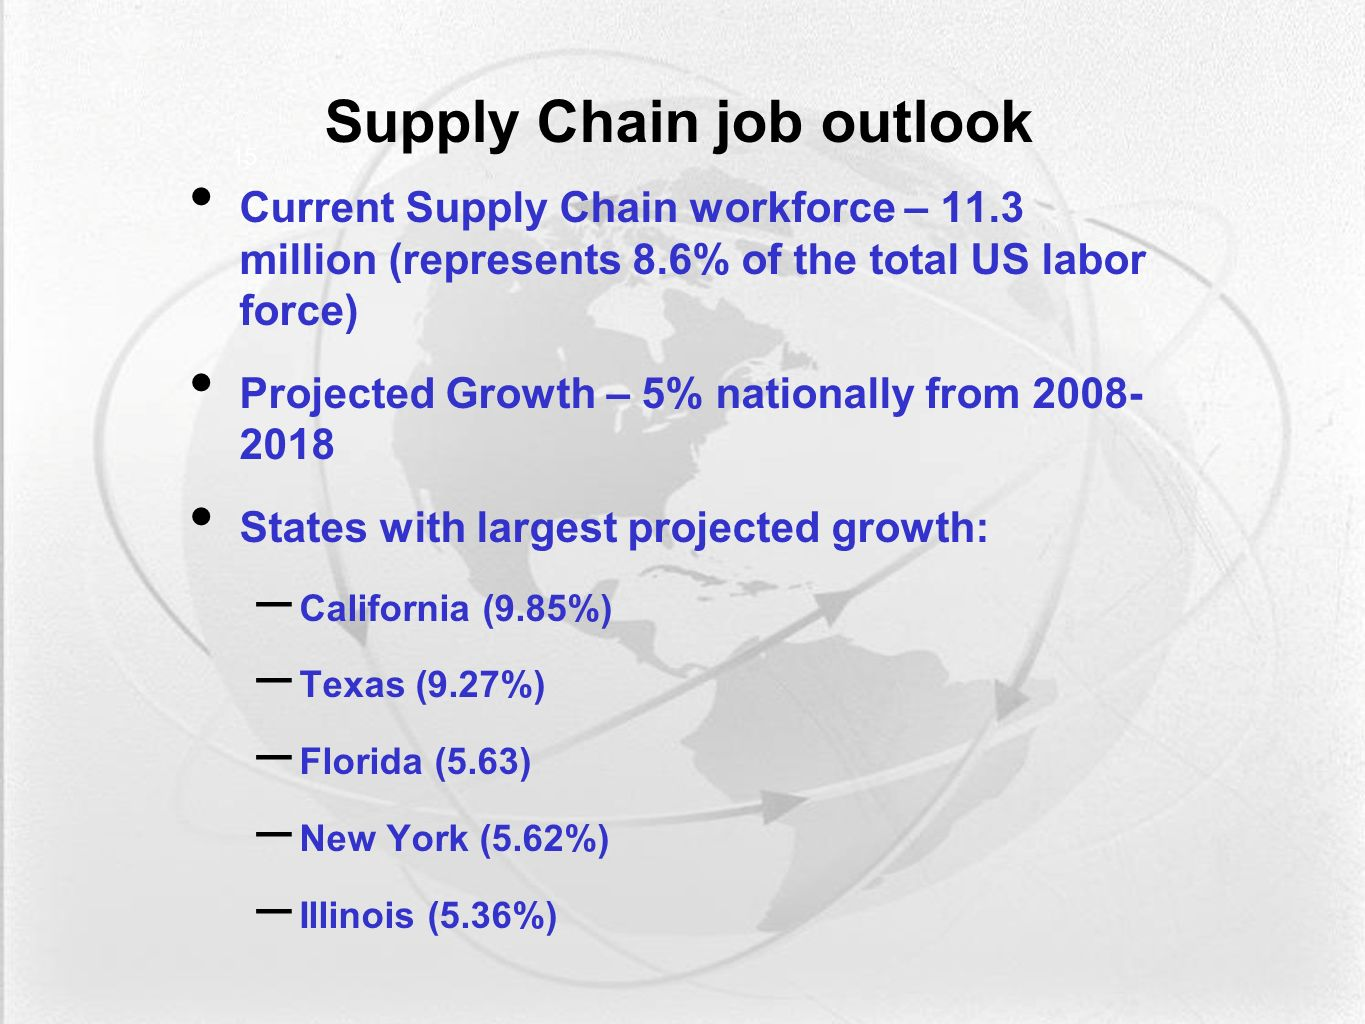 Supply Chain job outlook Current Supply Chain workforce – 11.3 million (represents 8.6% of the total US labor force) Projected Growth – 5% nationally from 2008- 2018 States with largest projected growth: – California (9.85%) – Texas (9.27%) – Florida (5.63) – New York (5.62%) – Illinois (5.36%) 15